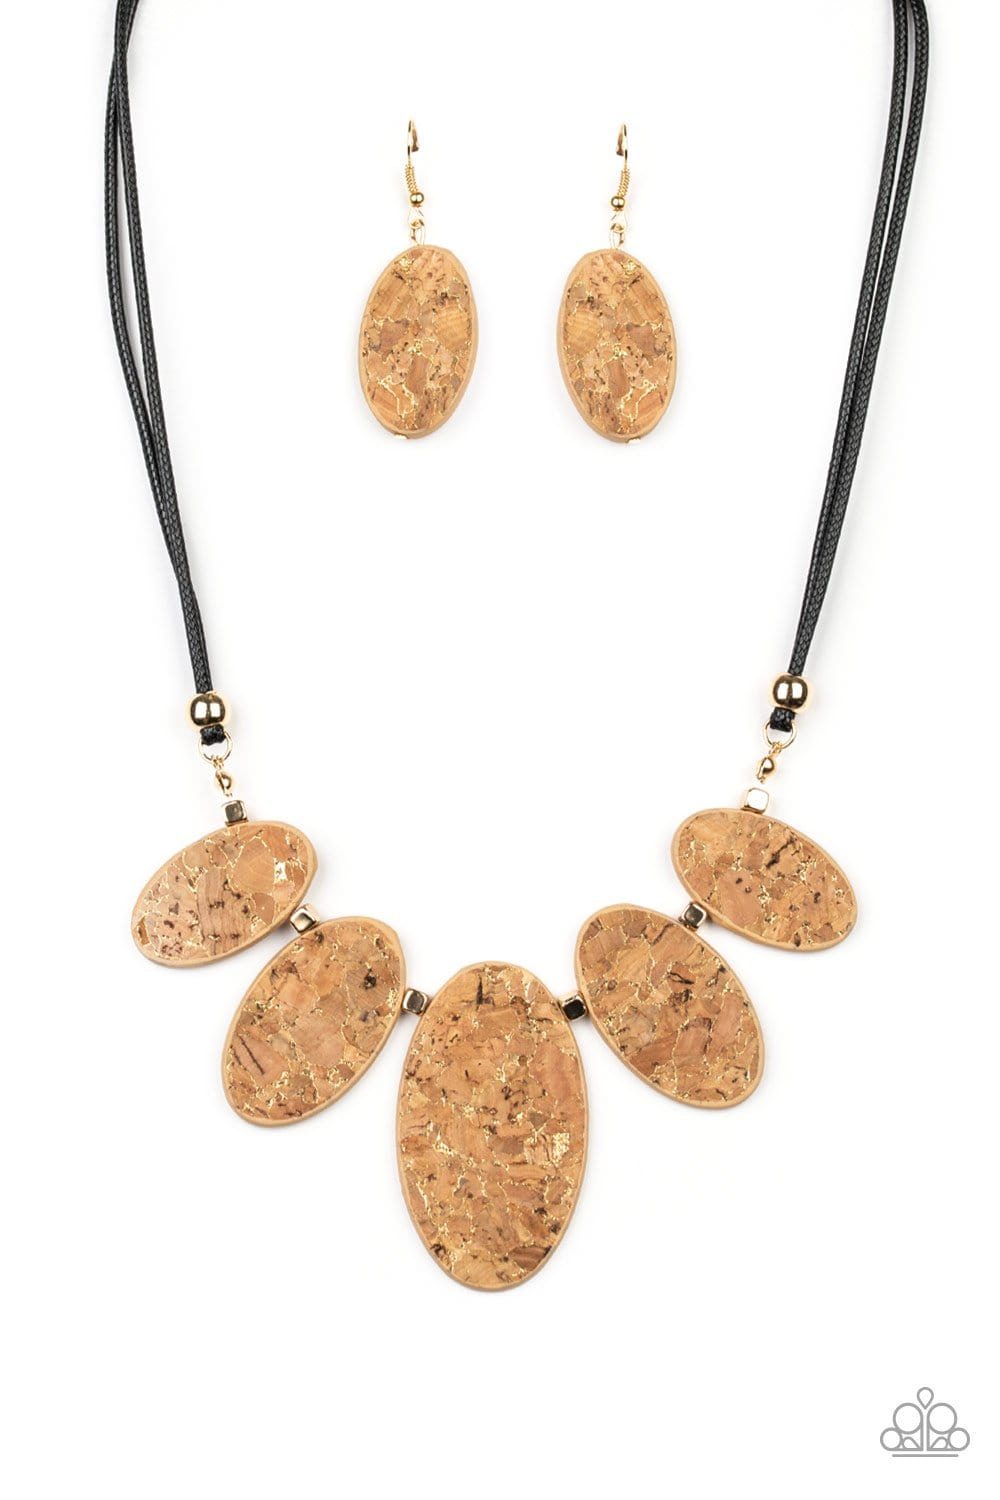 Paparazzi: Natures Finest - Gold Cork-Like Necklace